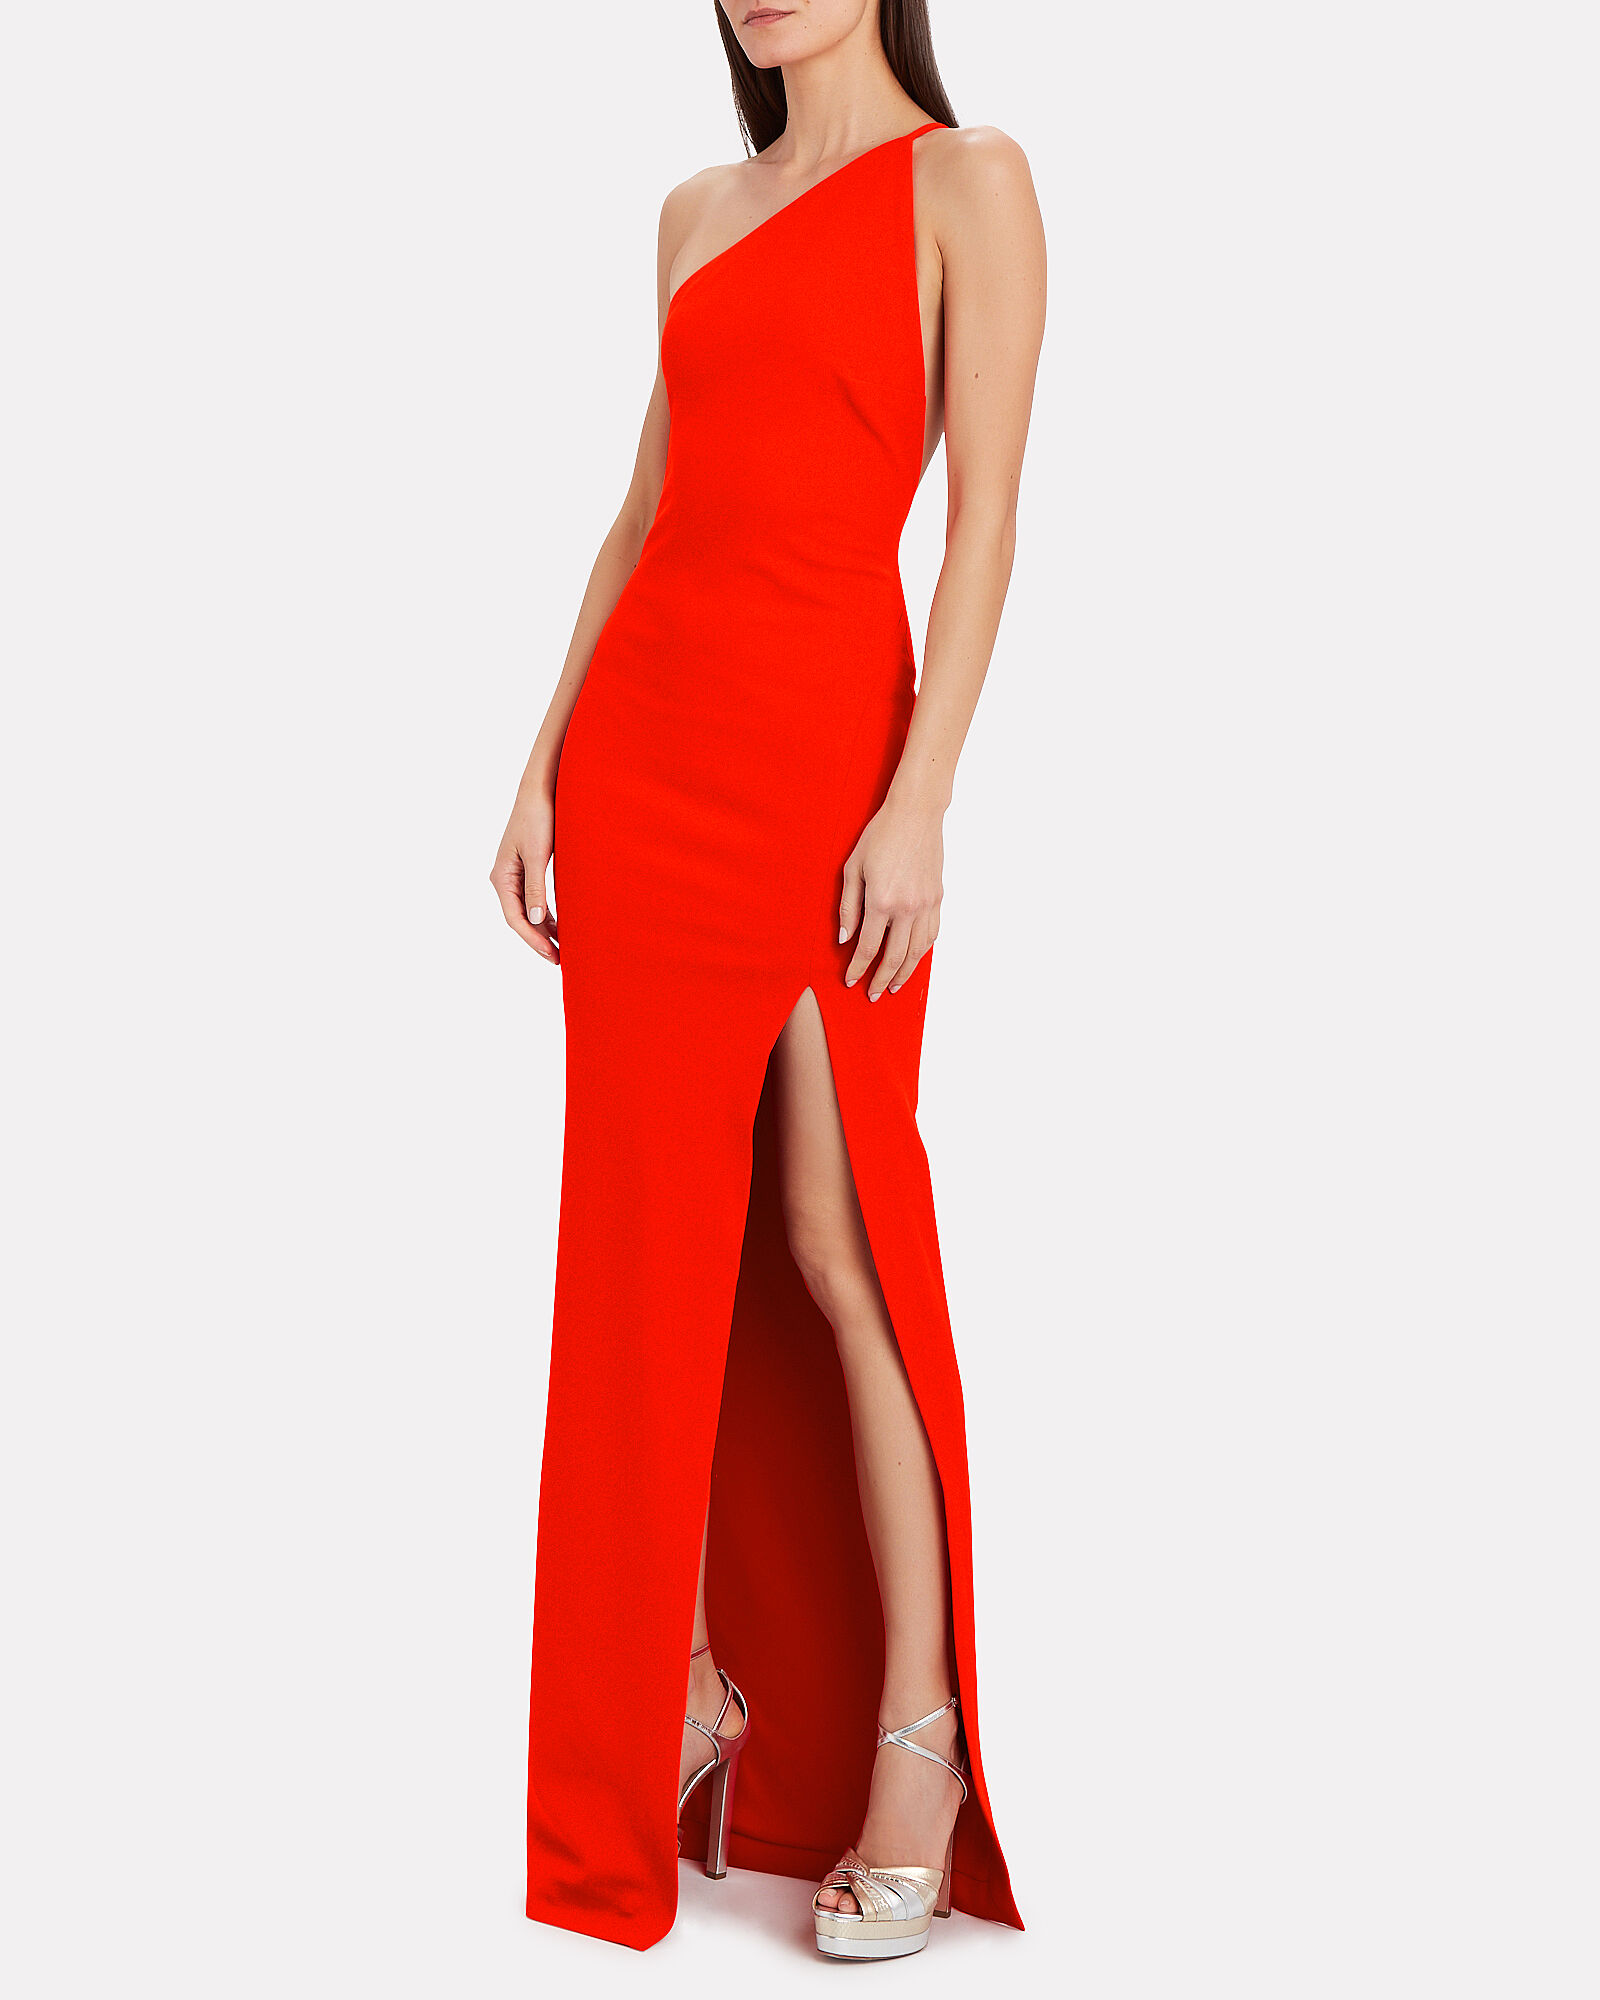 Petch One-Shoulder Gown, RED, hi-res